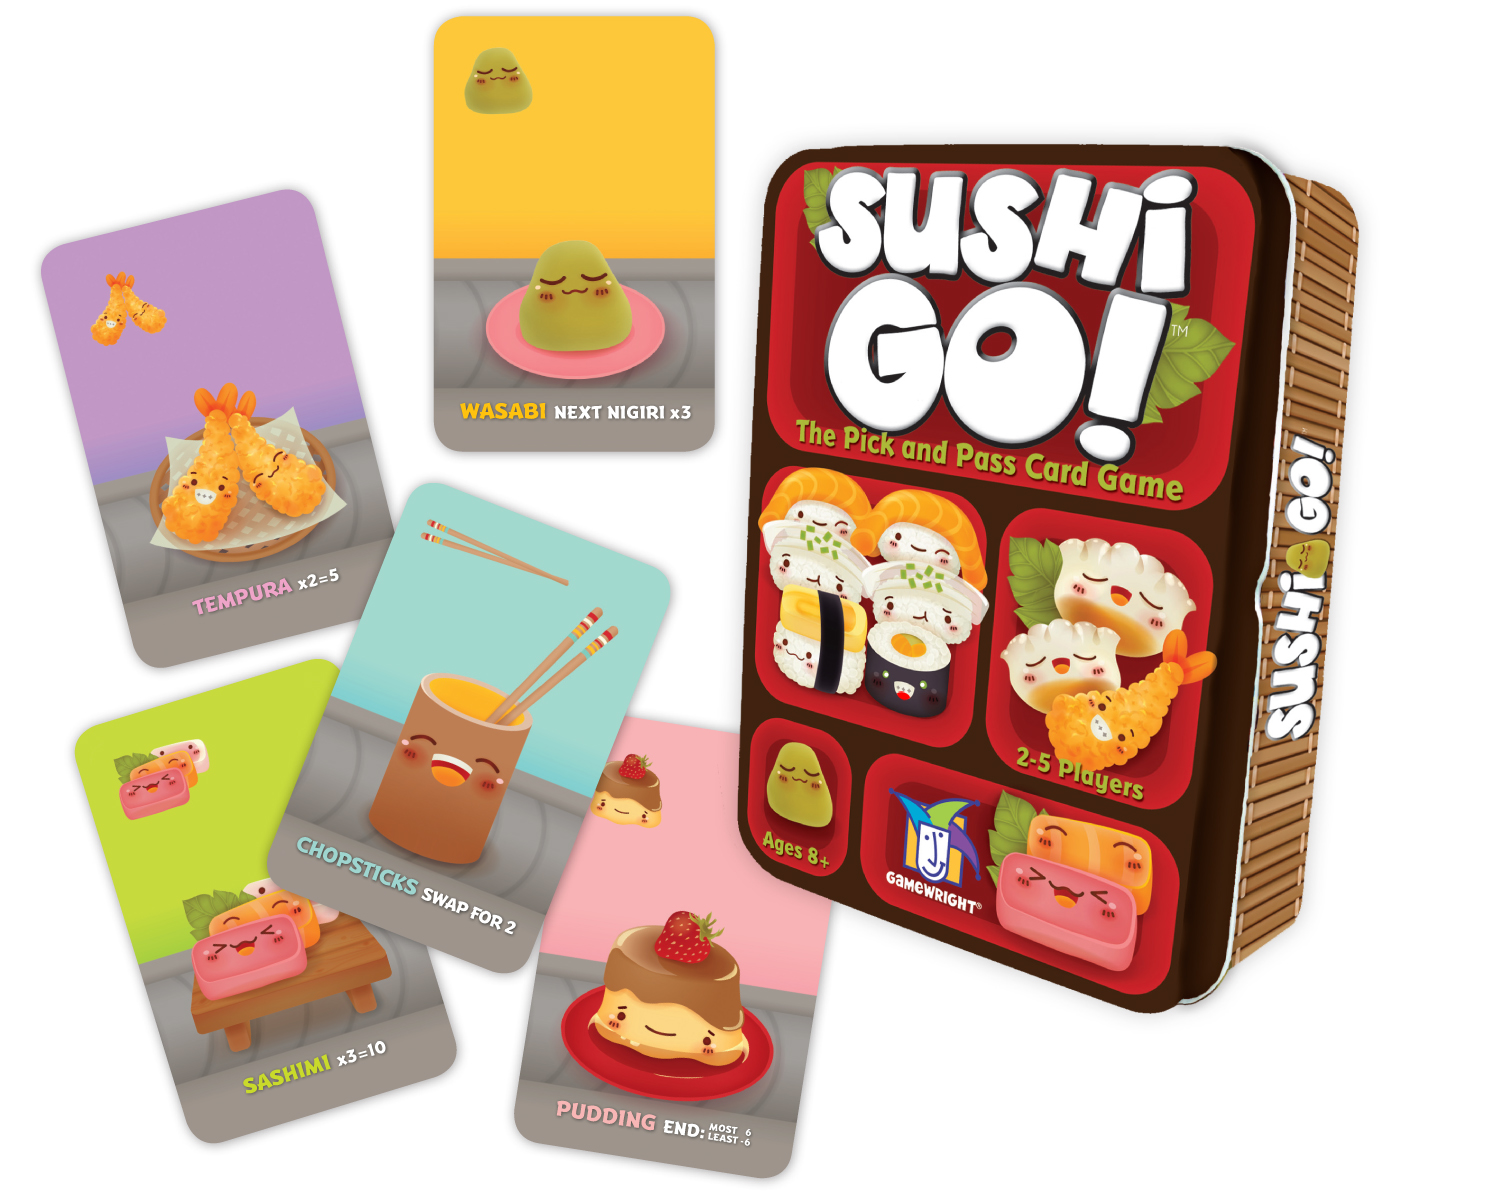 Board Game Review: Sushi Go!